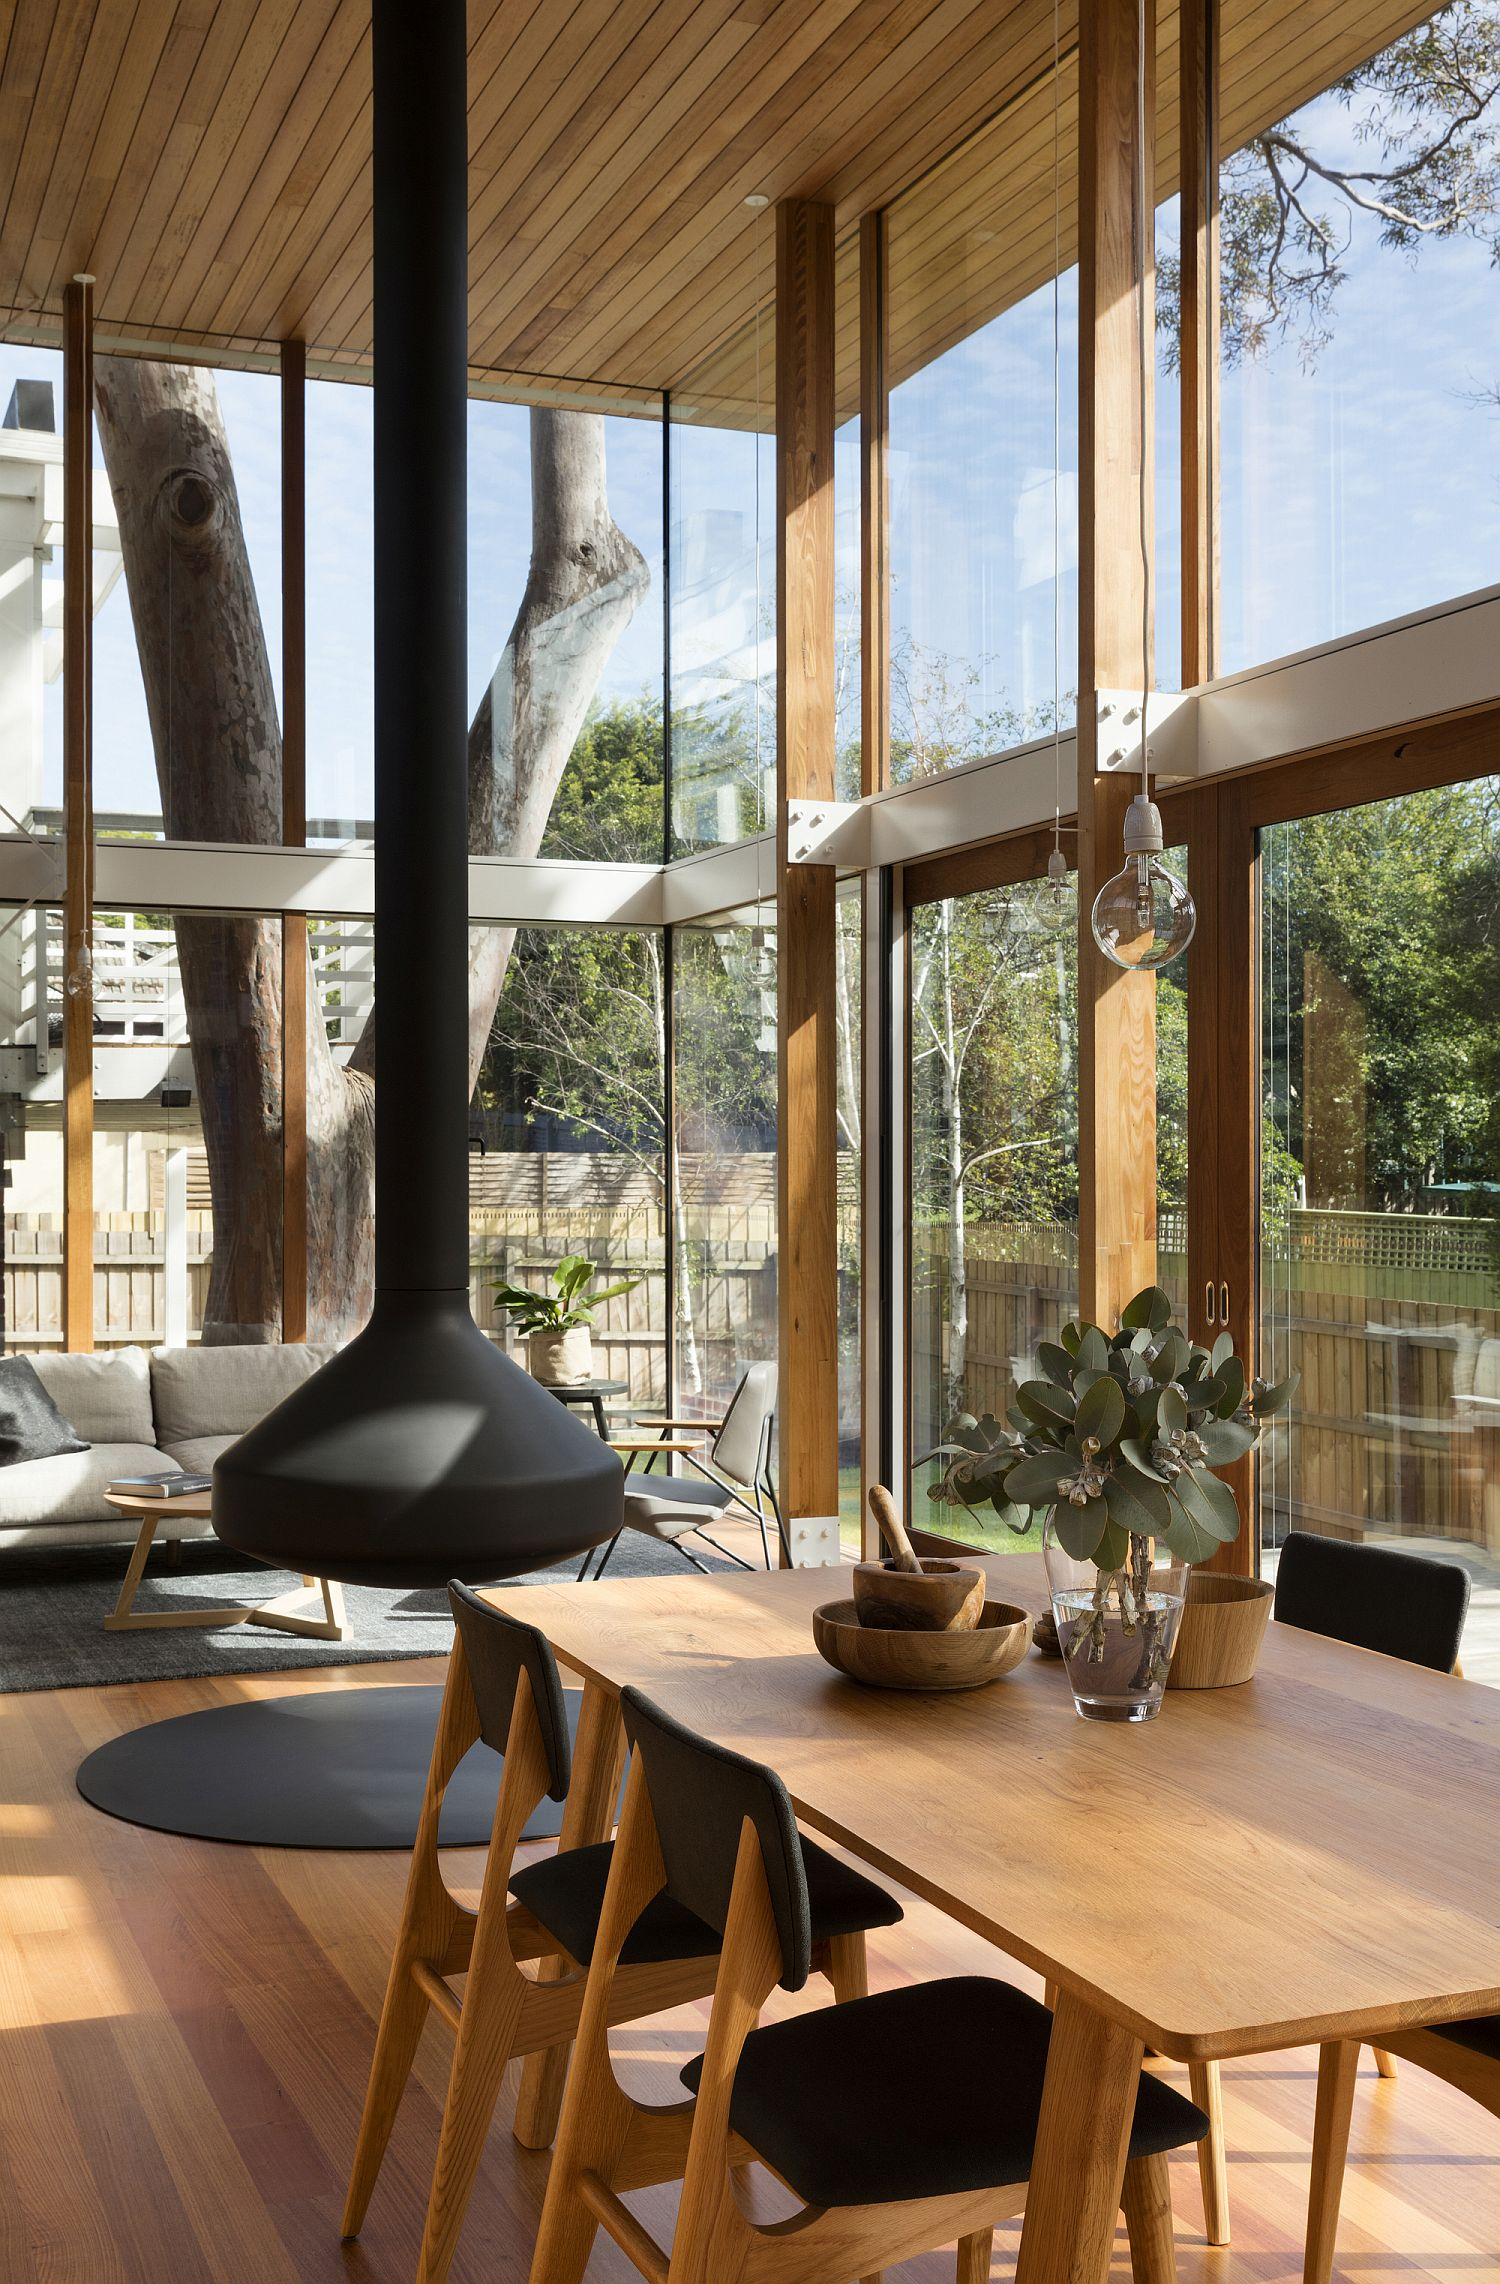 Double height dining room with glass walls